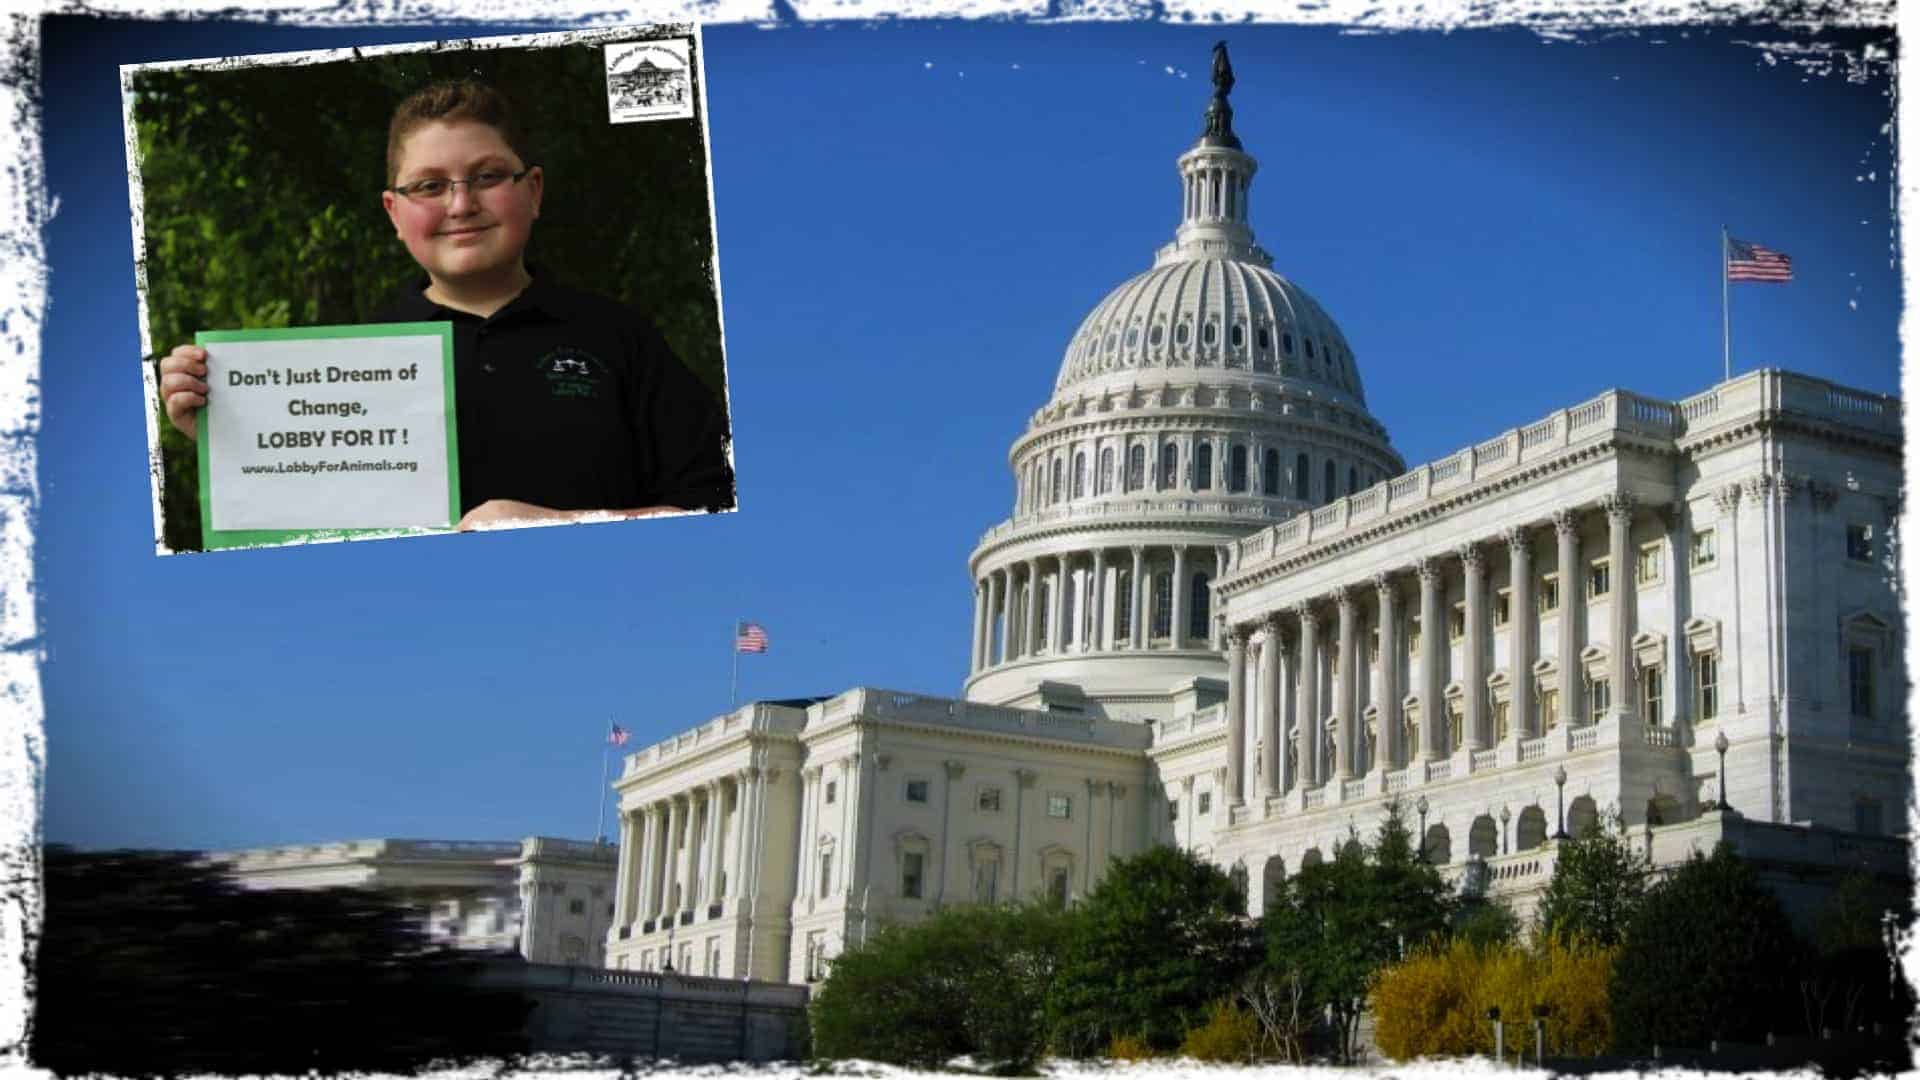 """Thomas Ponce, a twelve year old school boy and animal activist at the time the photograph was taken, is shown in an insert image holding up a small sign saying """" Don't just dream of change, lobby for it. www.LobbyForAnimals.org"""" . The background image is one of the congress building in Washington DC."""